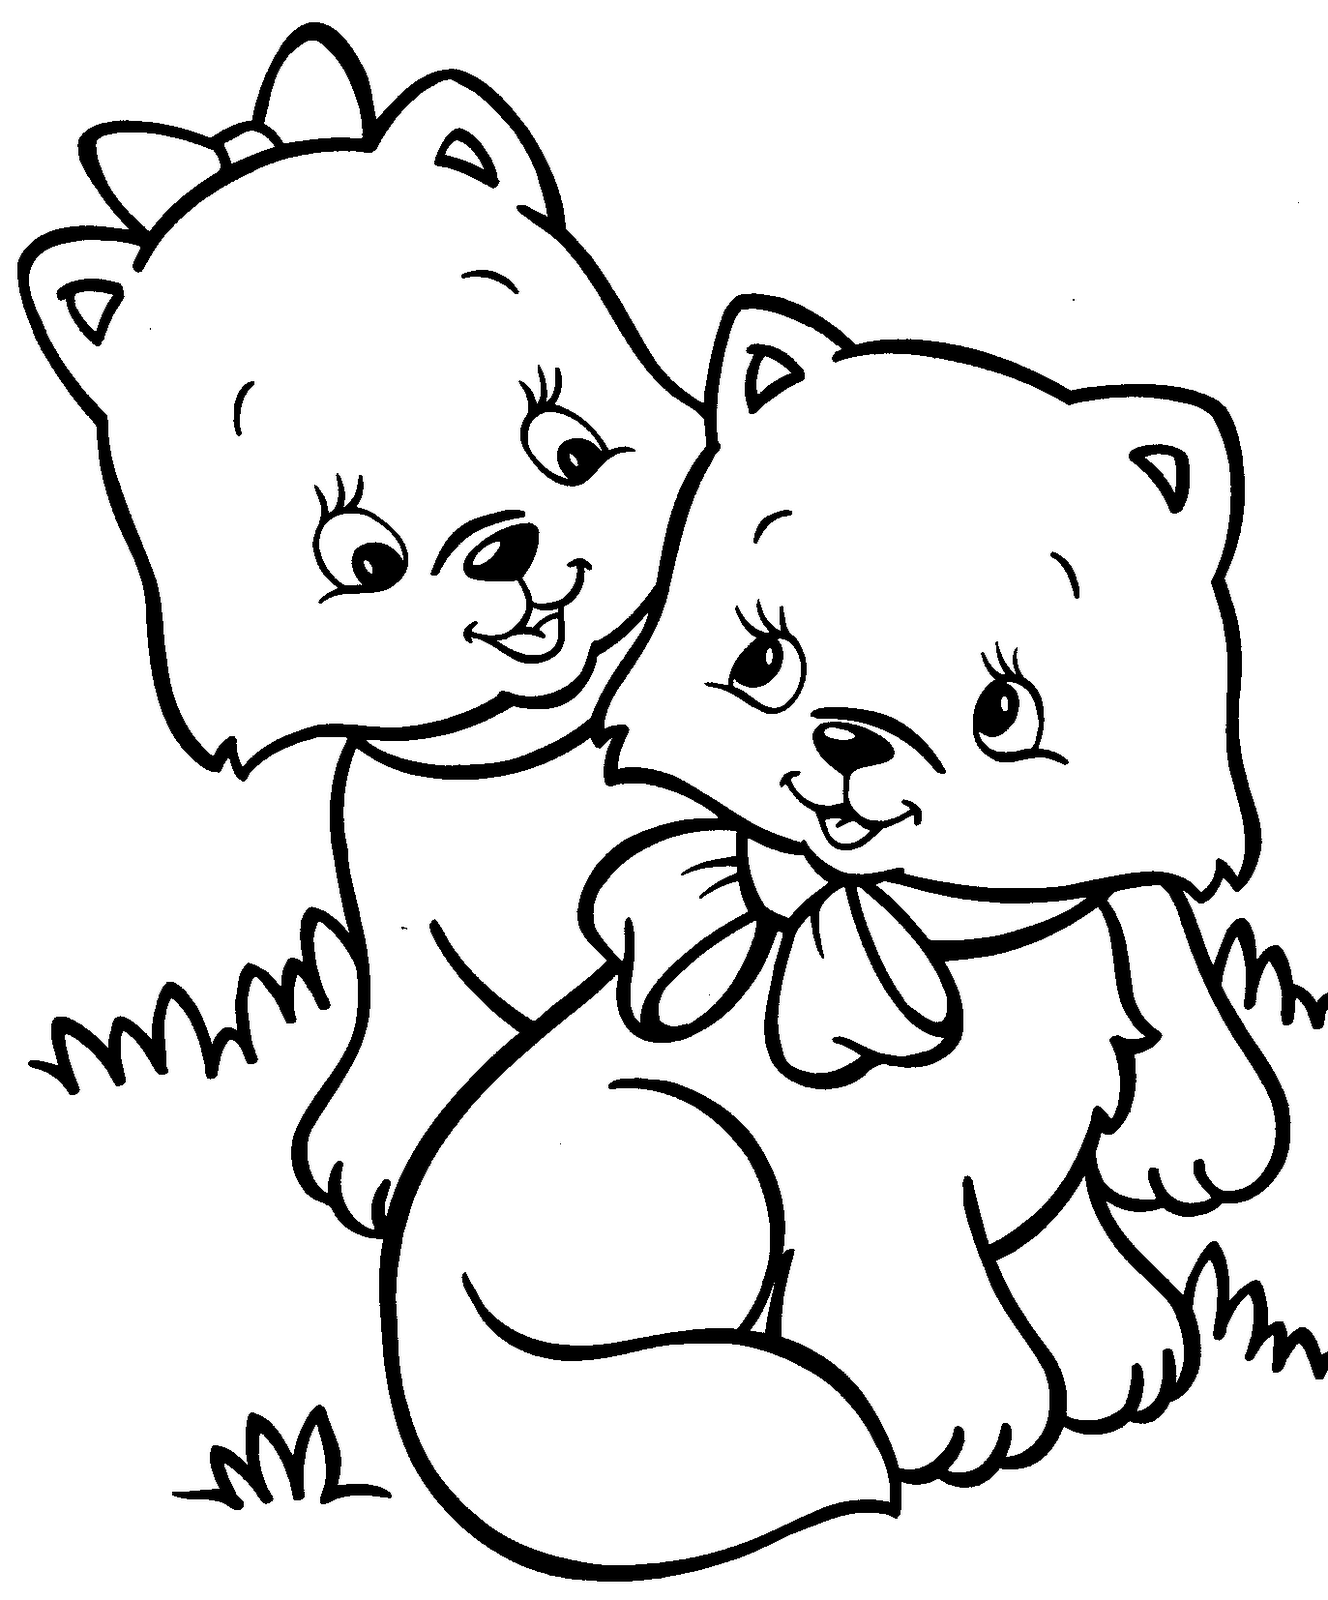 kitten coloring pictures cute coloring pages best coloring pages for kids coloring kitten pictures